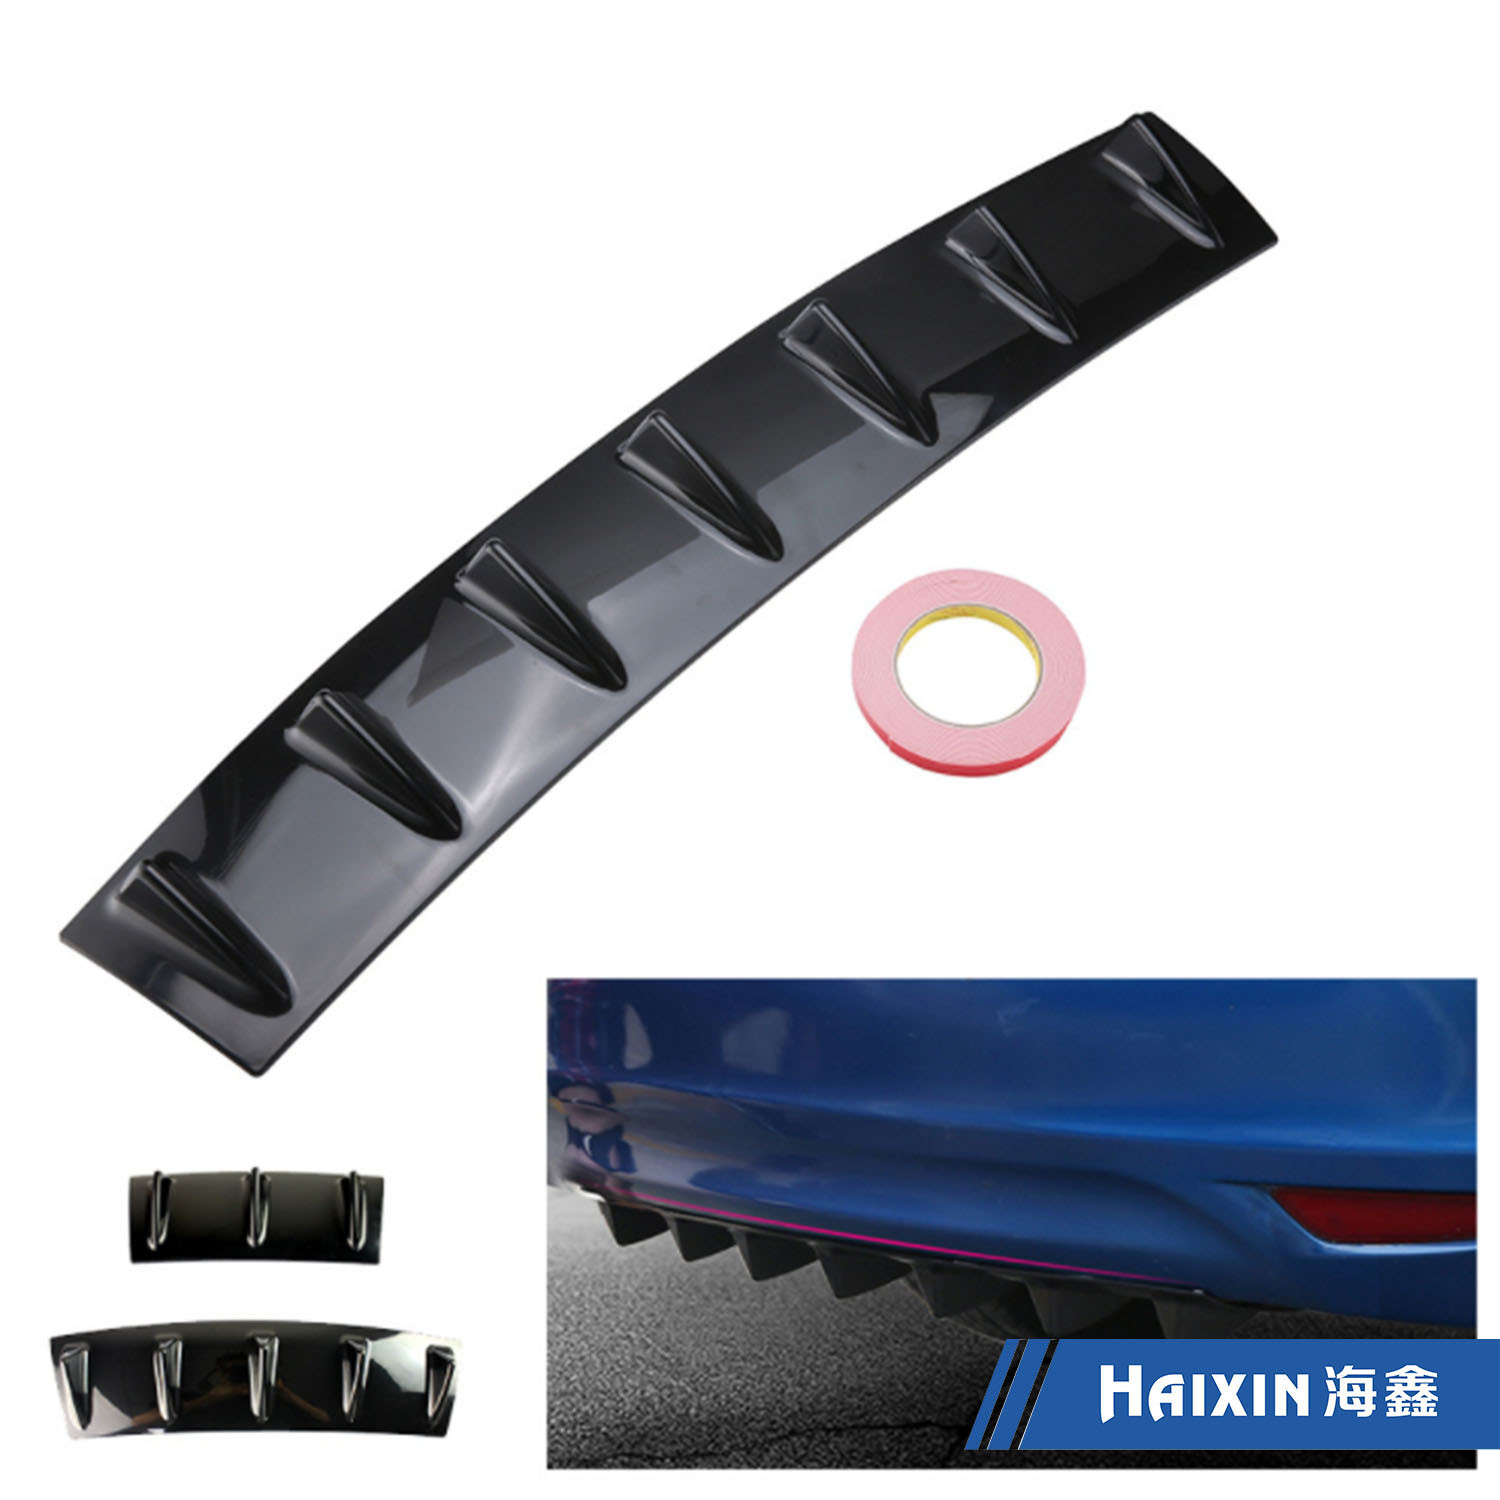 High Quality Plastic Product Plastic Auto Part Bumper Accessories for Jeep/Toyota/Renaultget Latest Price /Vacuum Casting Plastic